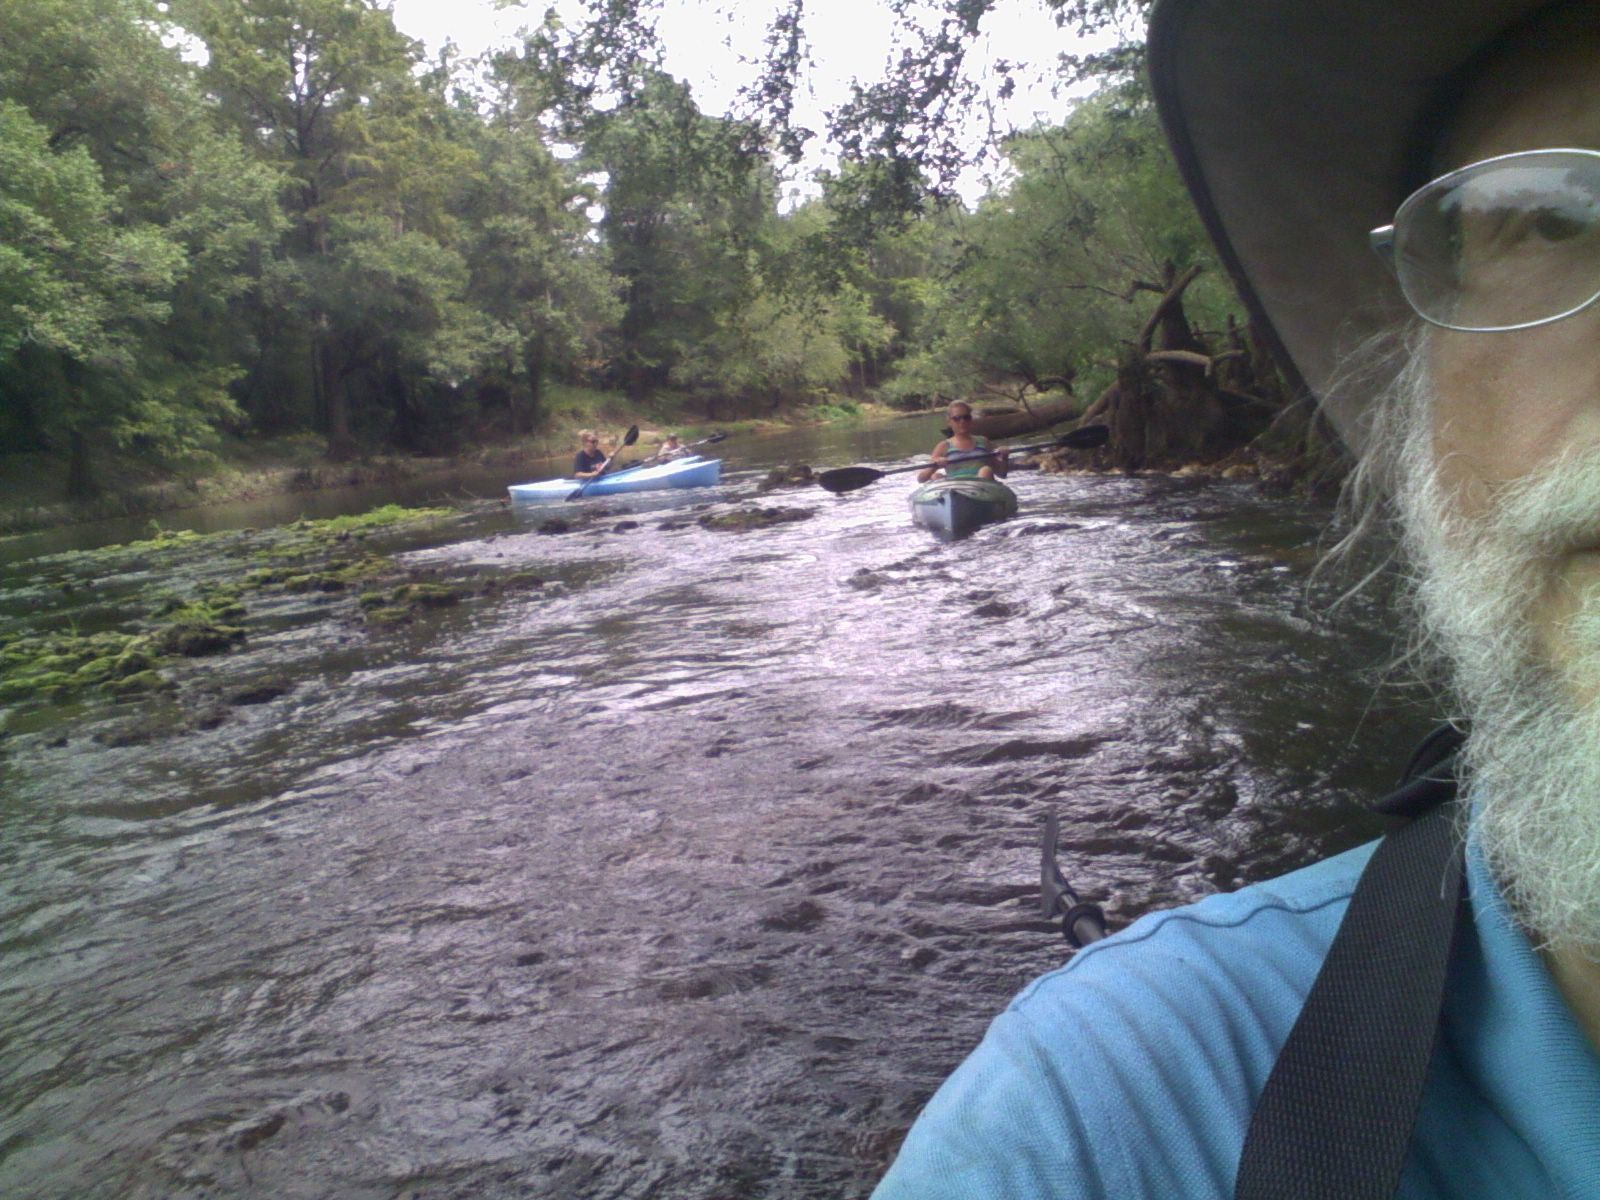 1600x1200 Leslie shoots the rapids 30.7954483, -83.4526749, in Sabal Trail @ Withlacoochee @ US 84, by John S. Quarterman, for WWALS.net, 28 August 2015